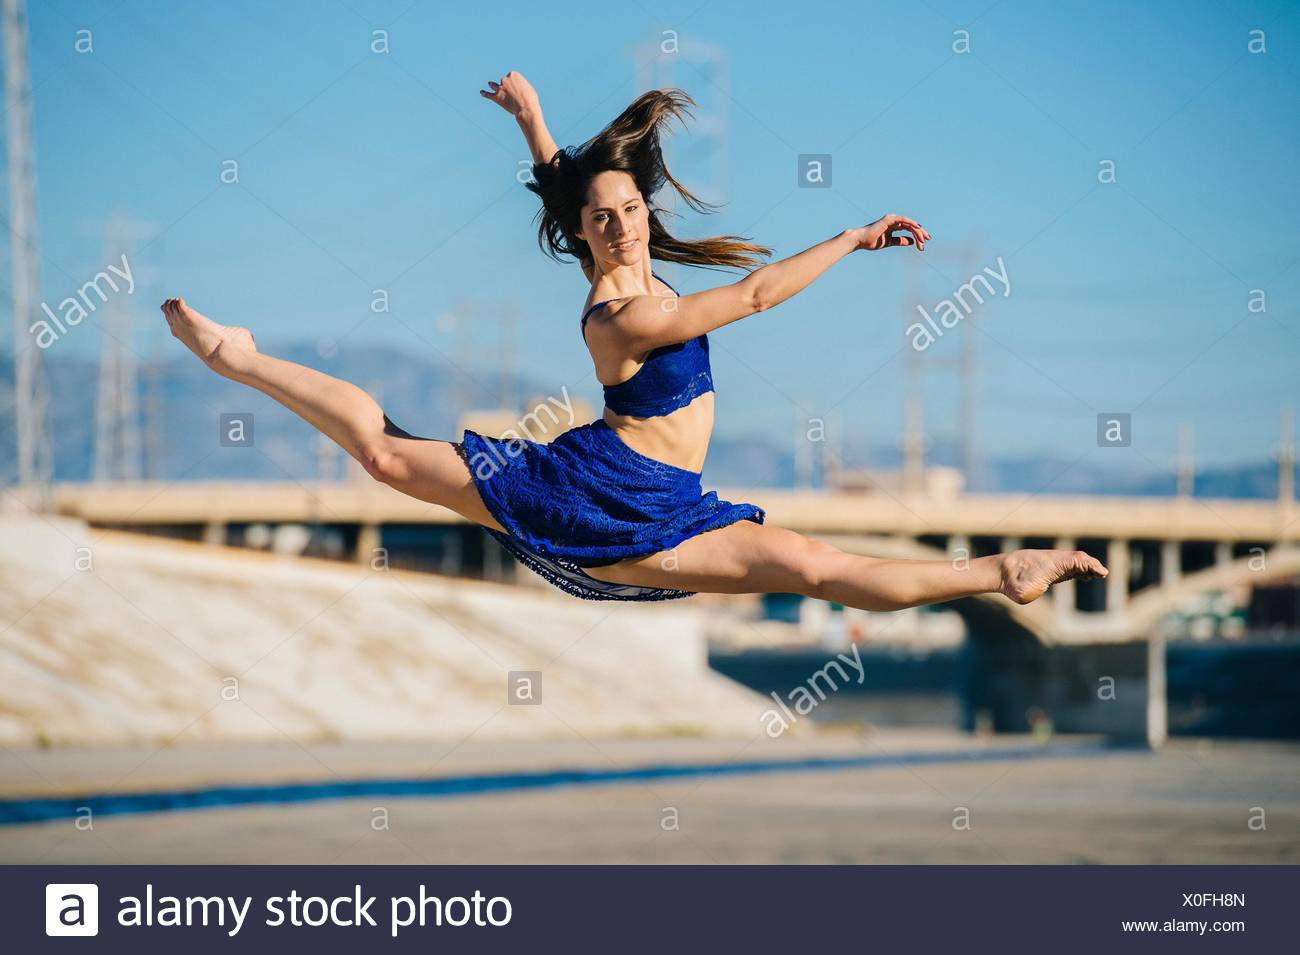 Side view of young woman doing the splits in mid air looking at camera smiling, Los Angeles, California, USA - Stock Image